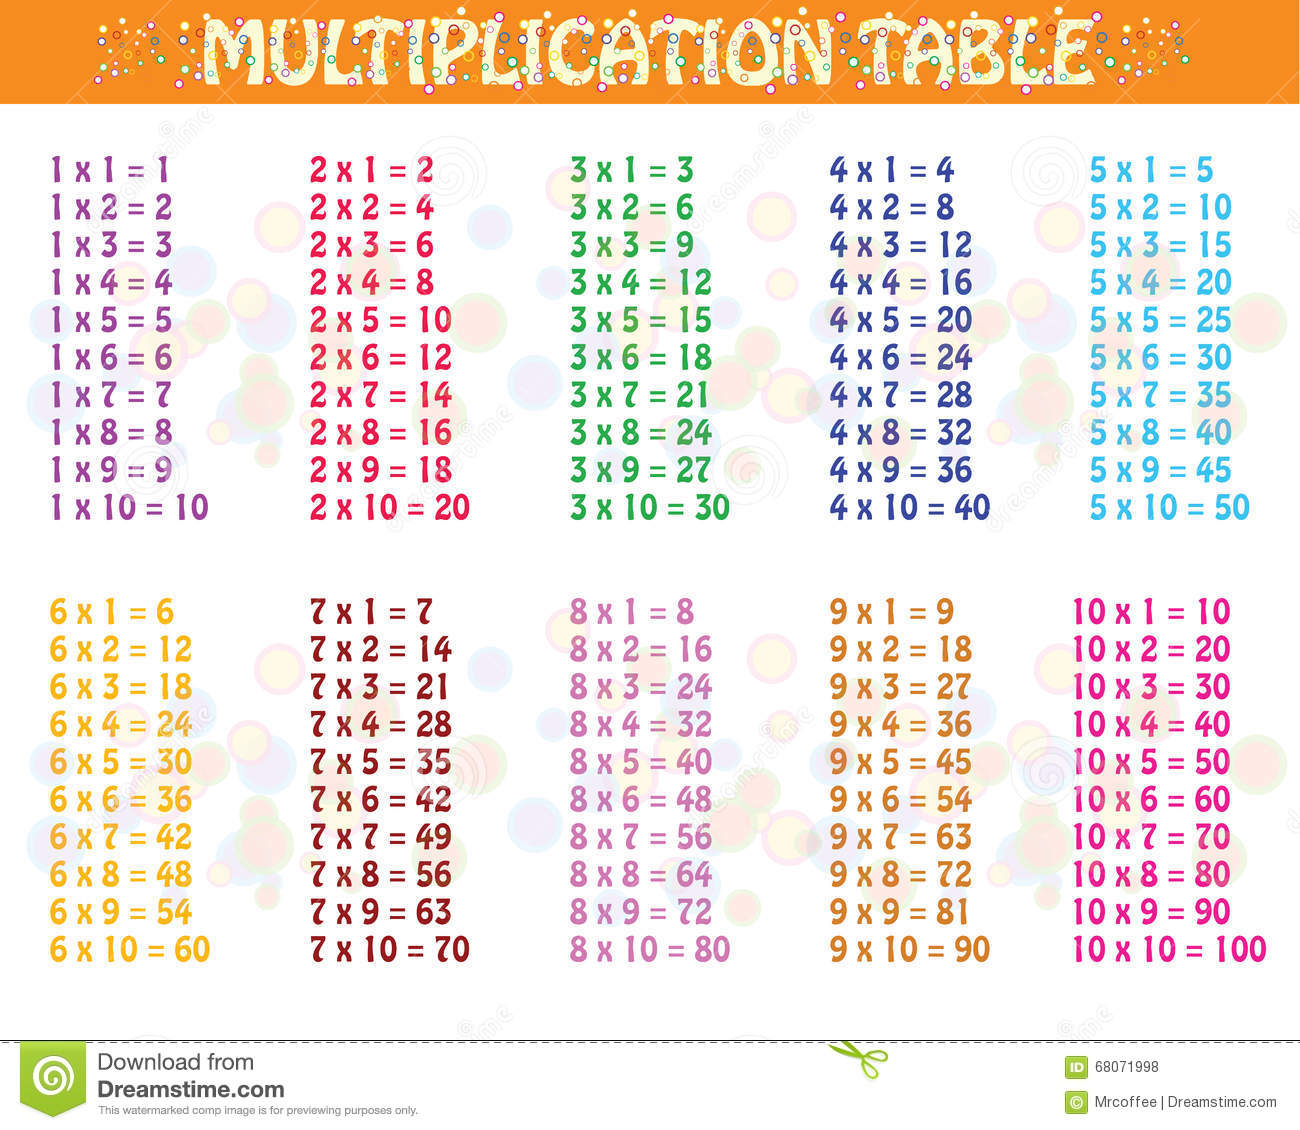 Multiplication X5 Worksheets  Printable Worksheets and Activities